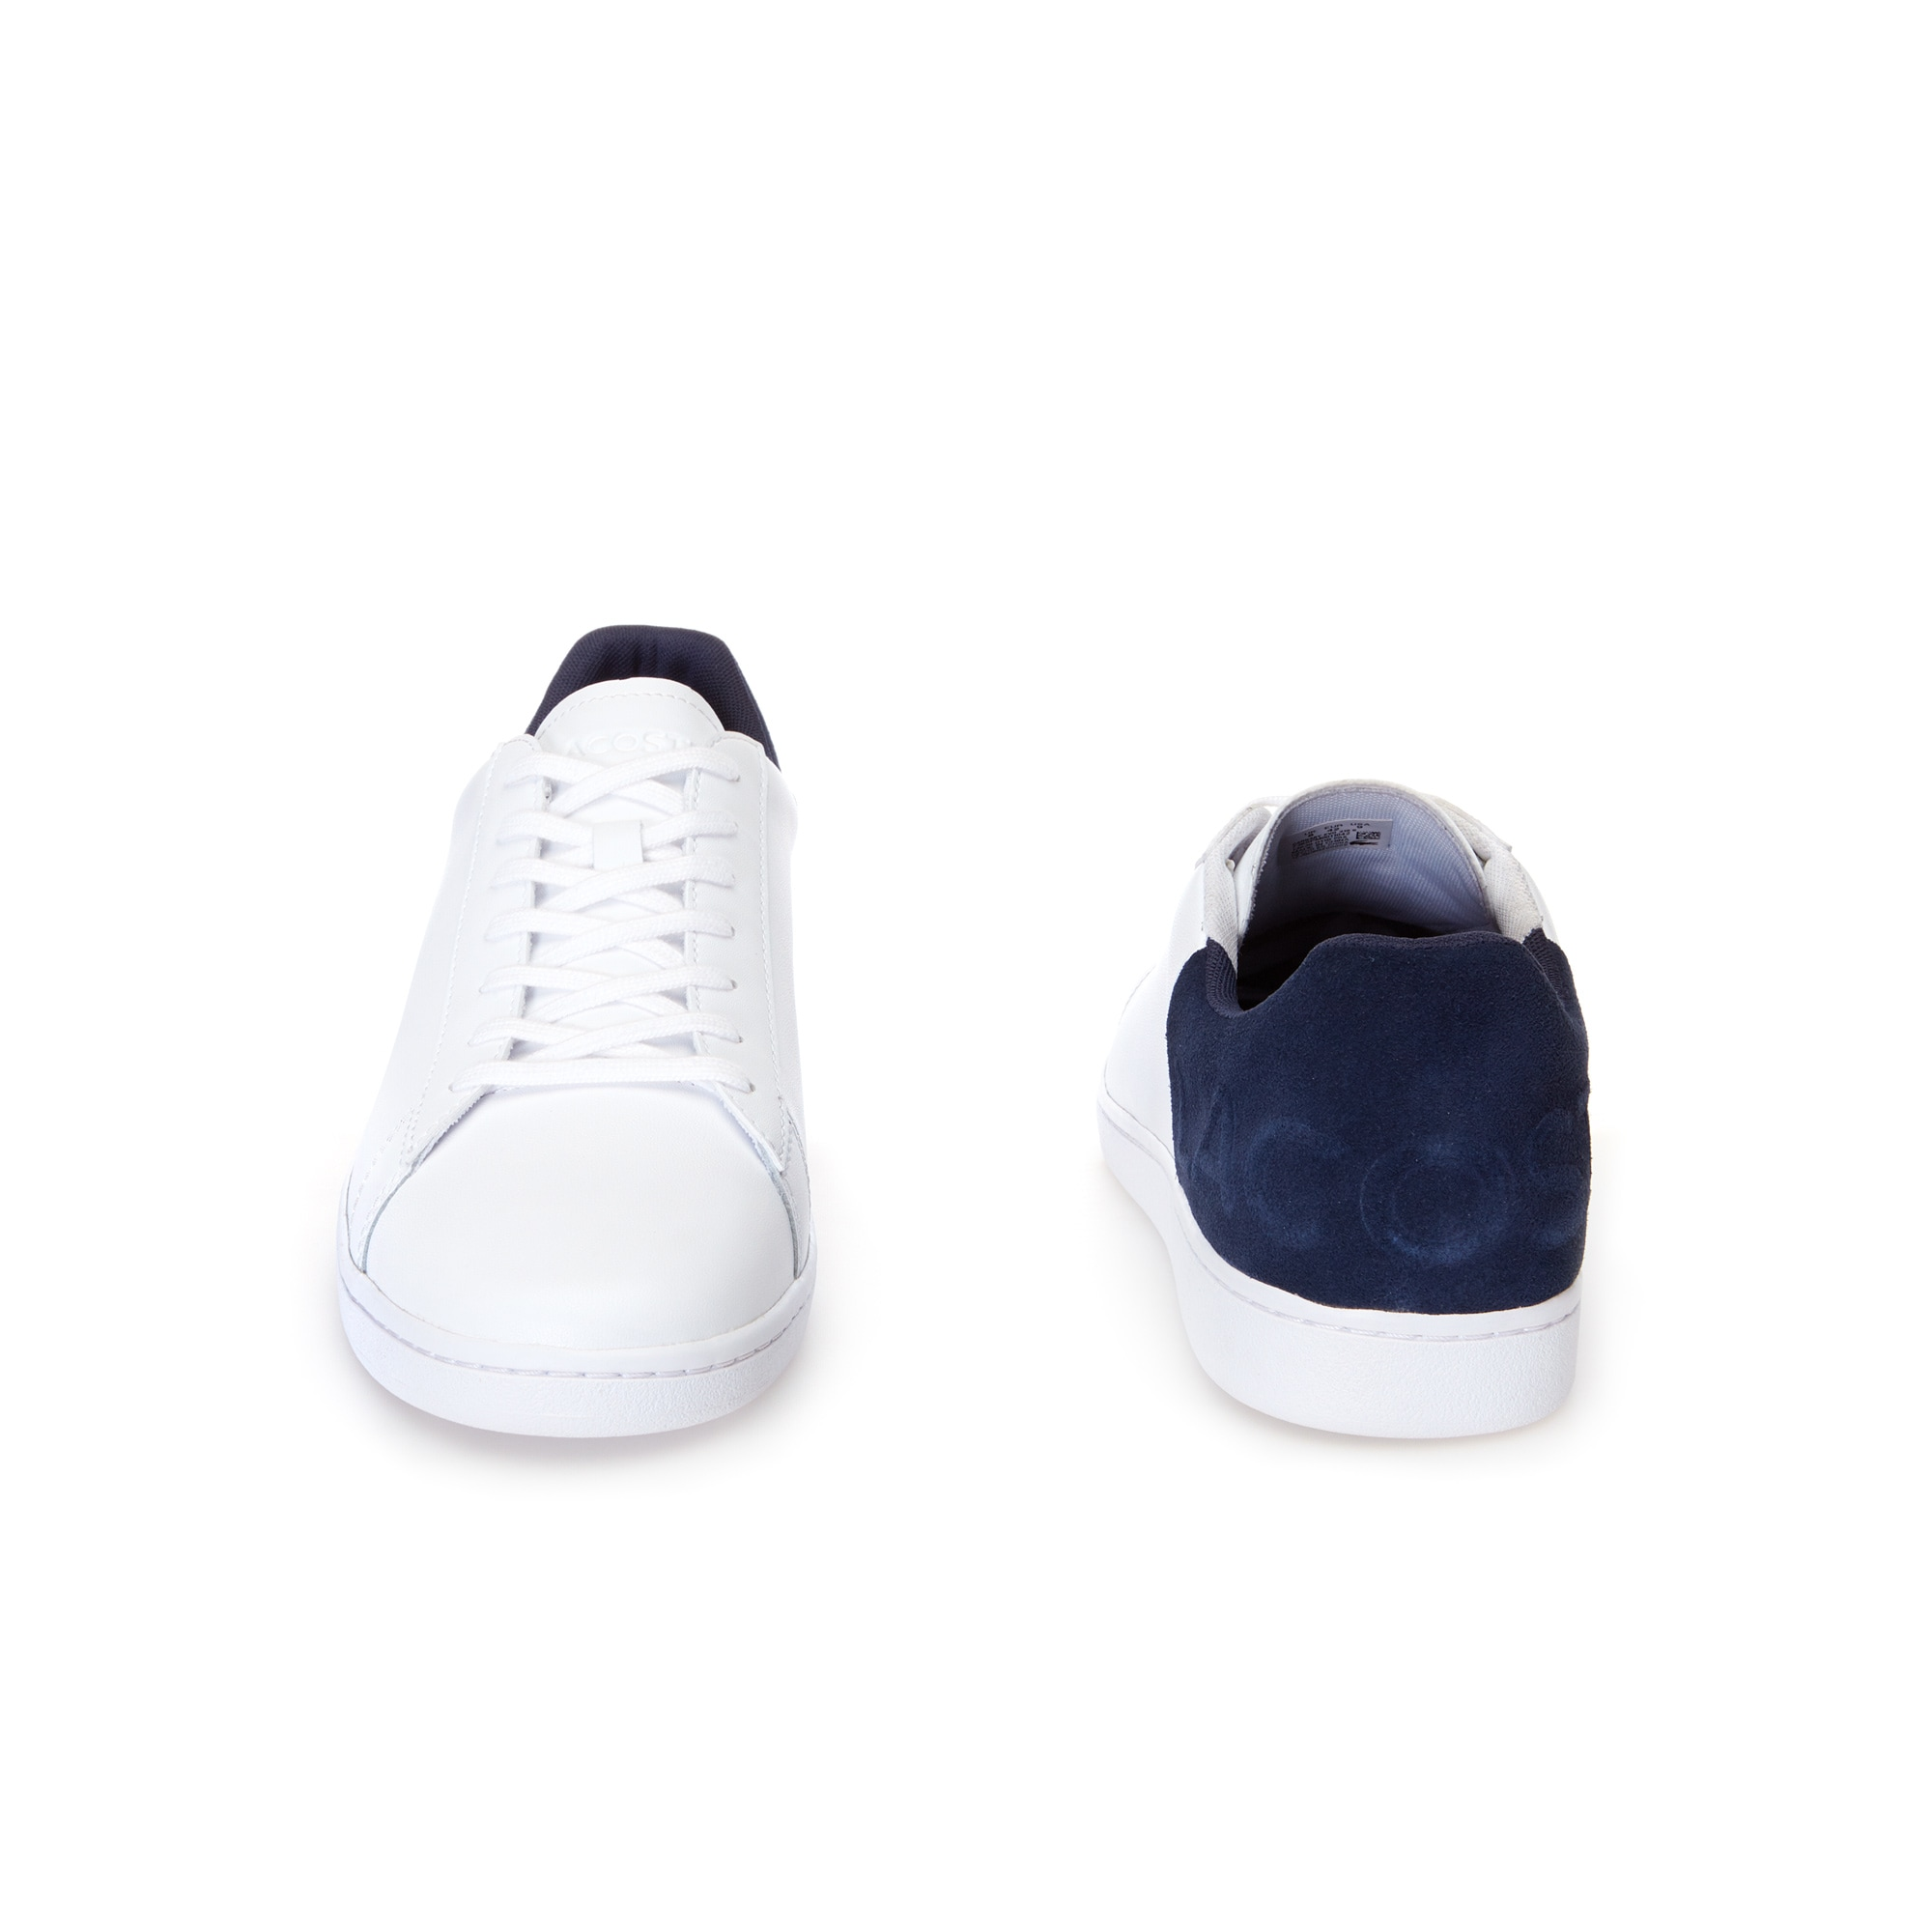 064a9b9736 Men's Carnaby Evo Leather and Suede Trainers